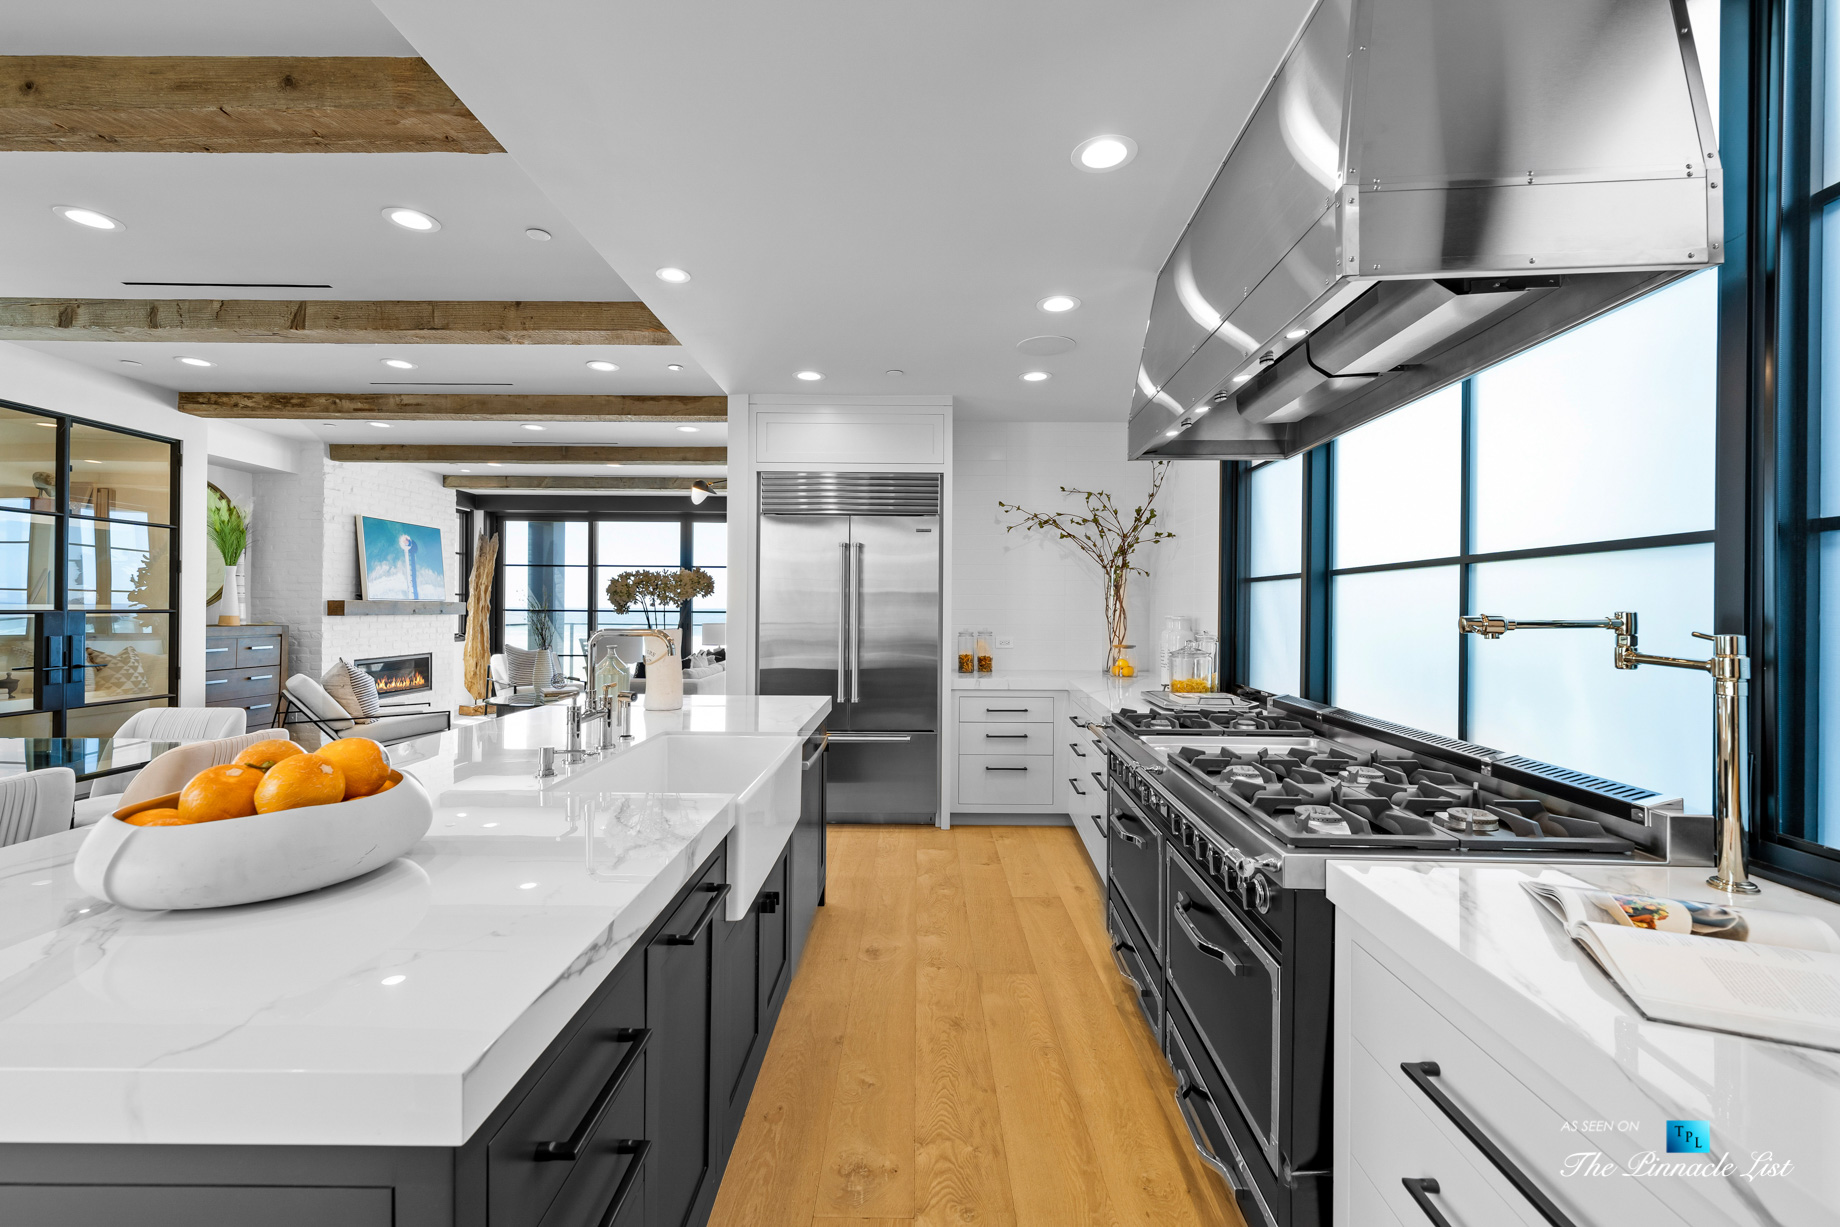 508 The Strand, Manhattan Beach, CA, USA – Kitchen Gas Stoves and Range Hood – Luxury Real Estate – Oceanfront Home